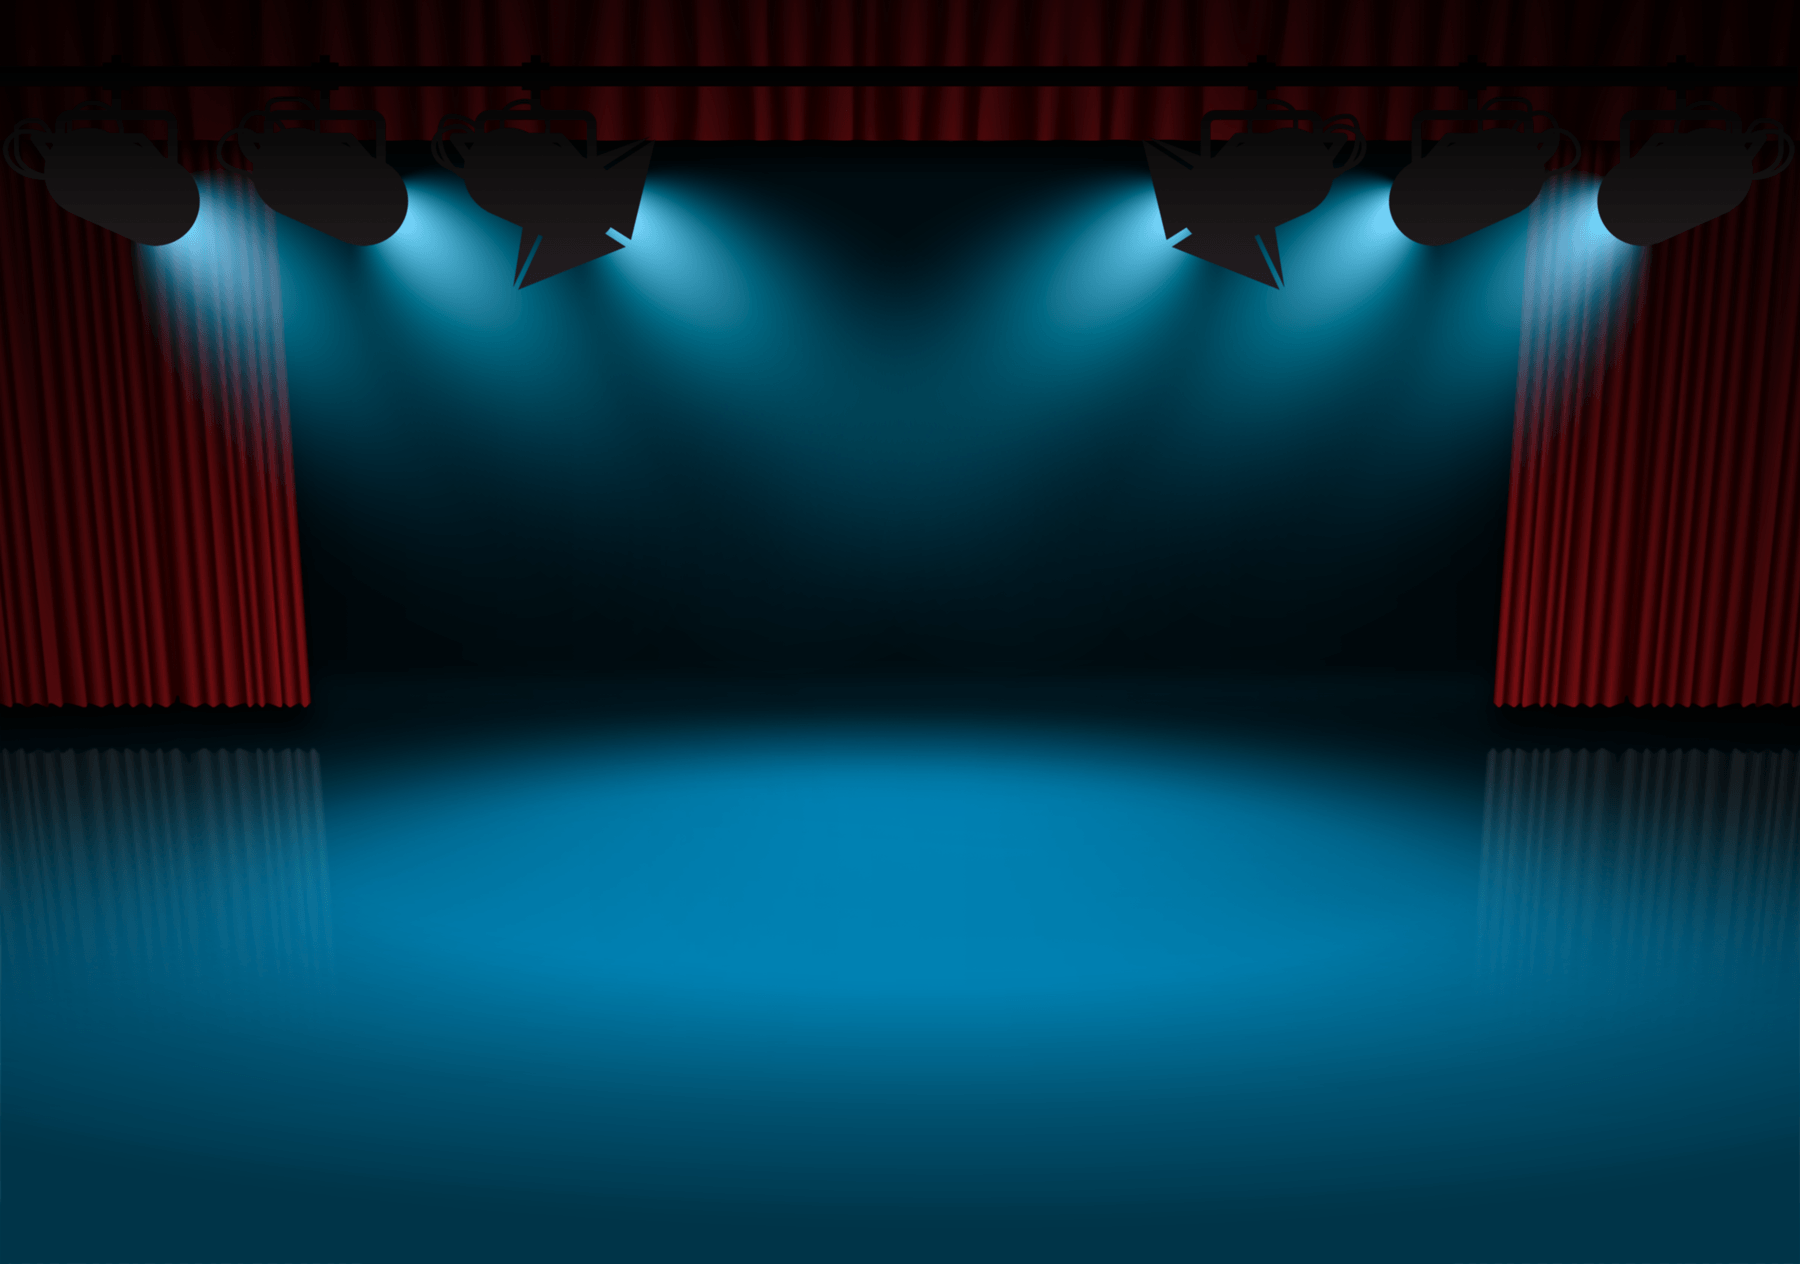 stage backgrounds image wallpaper cave